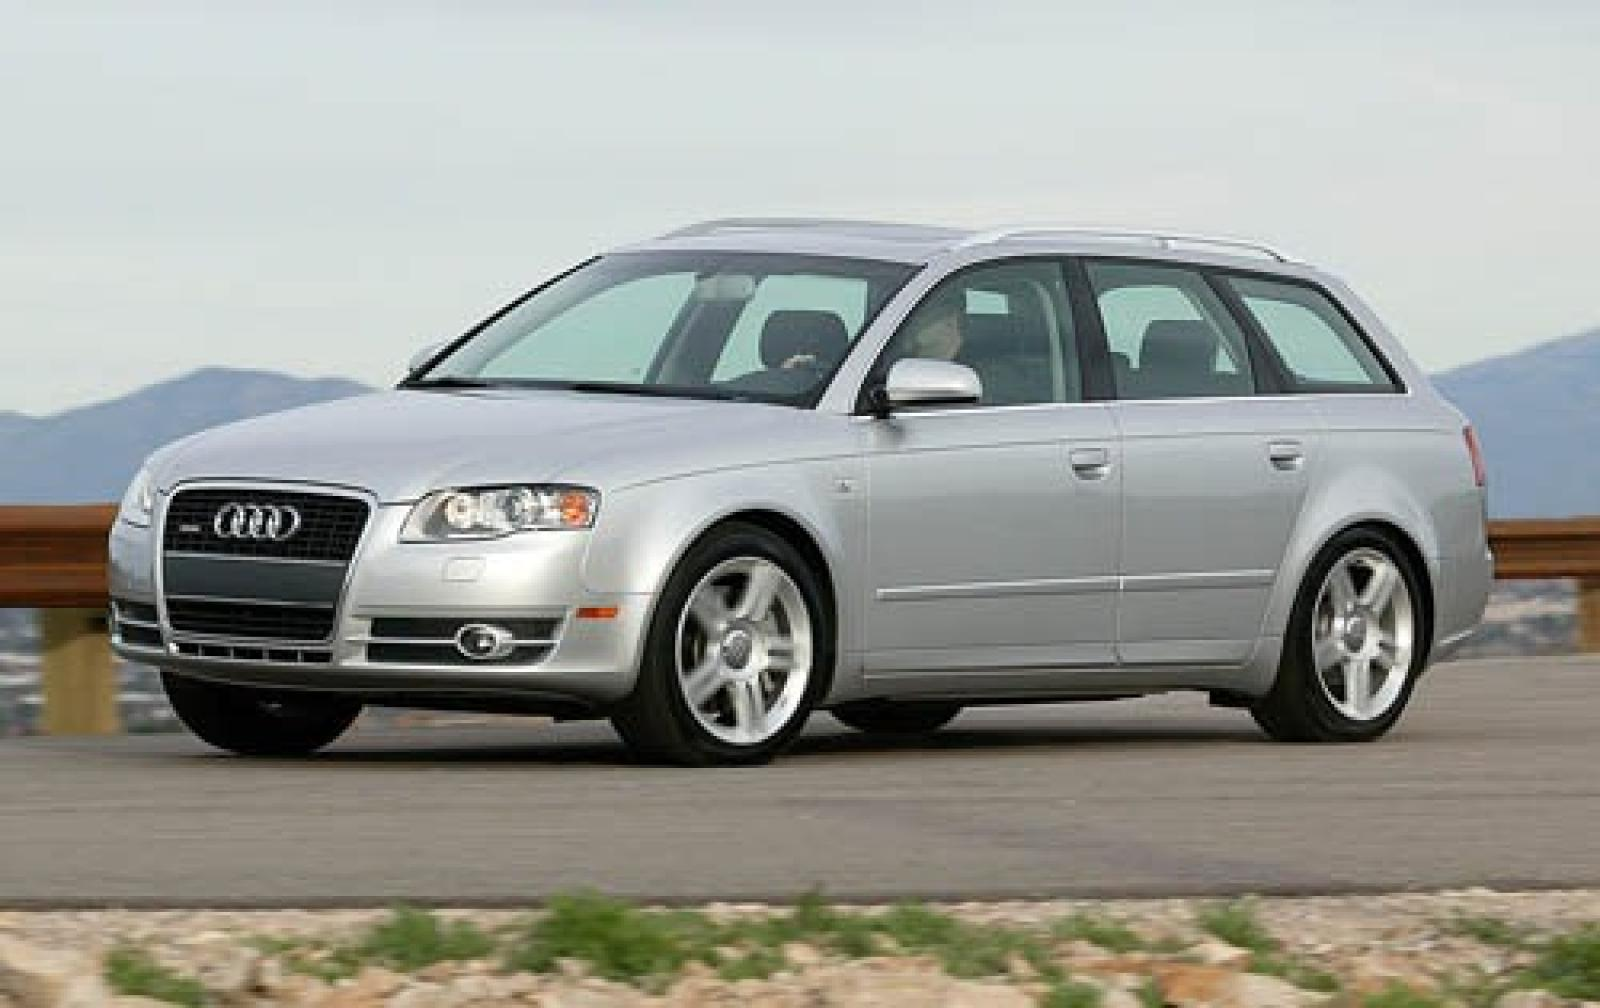 2007 Audi A4 Information And Photos Zombiedrive 2006 2 0t Engine Diagram 800 1024 1280 1600 Origin